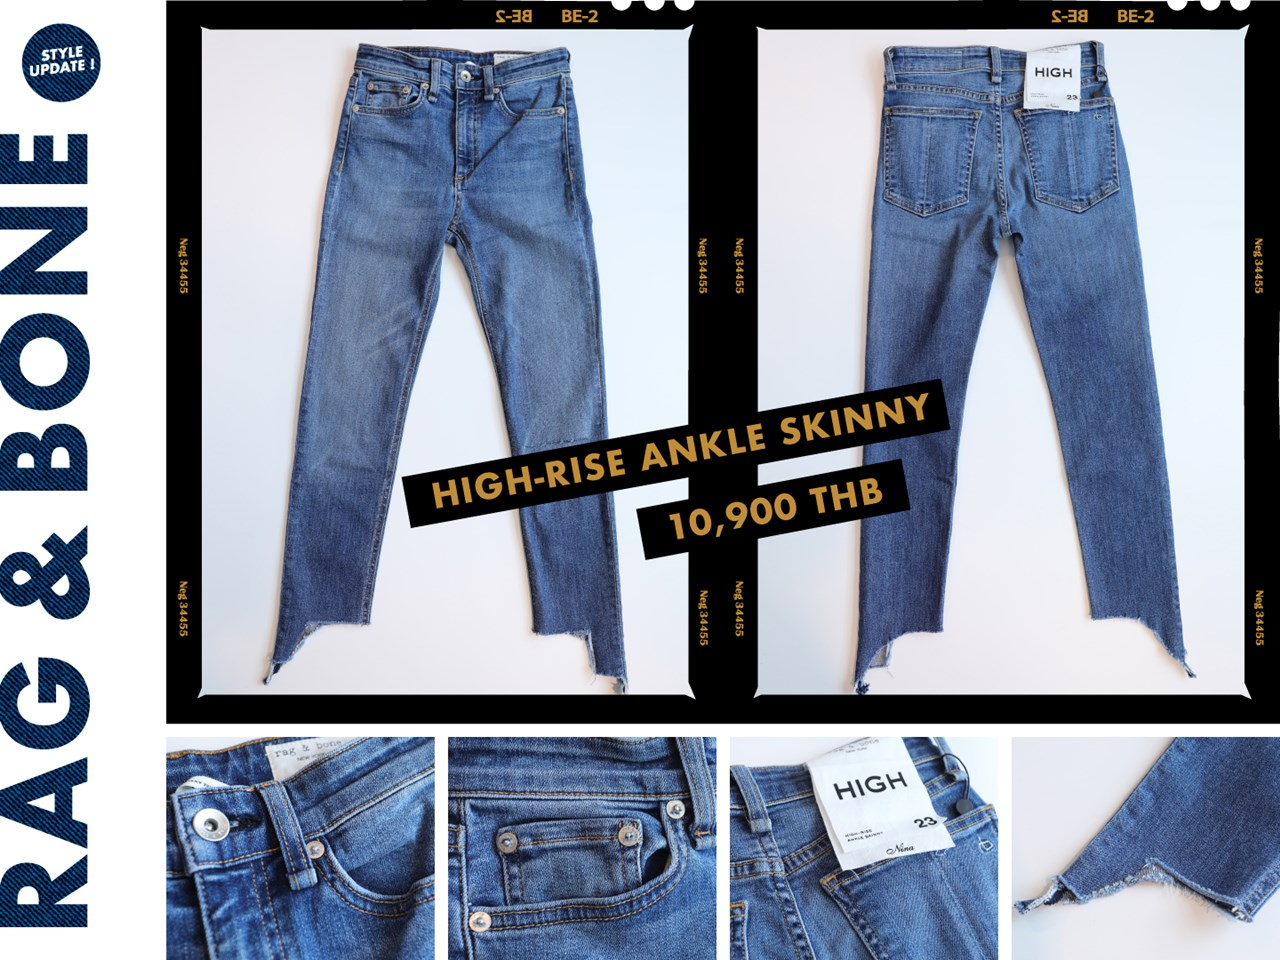 170af519 From high-rise jeans, we move on to mid-rise jeans. These look like the  most basic pair of denim jeans that Rag & Bone has to offer, with the  typical ...